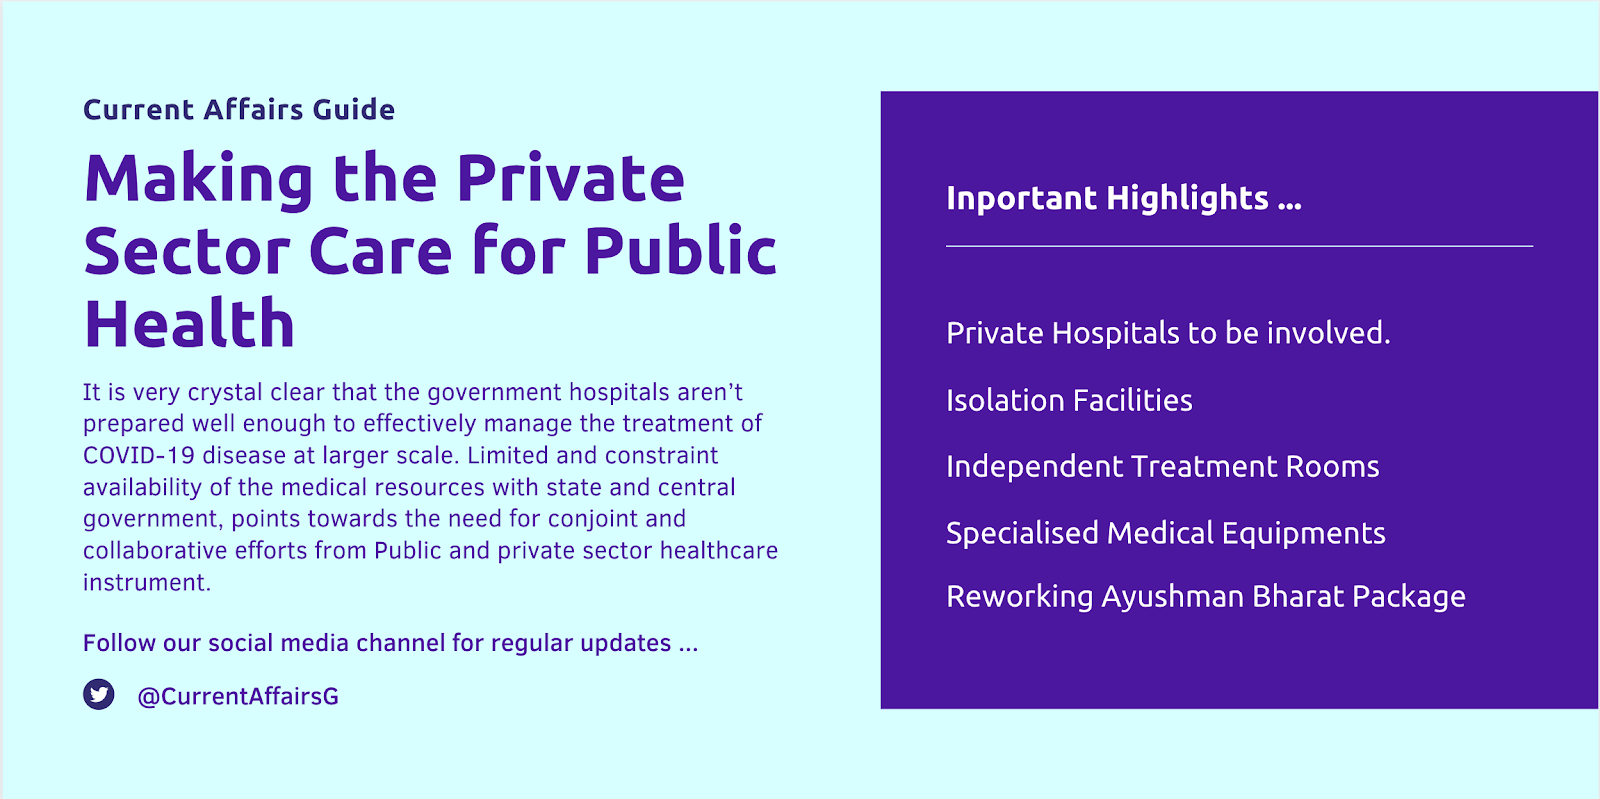 Making the Private Sector Care for Public Health